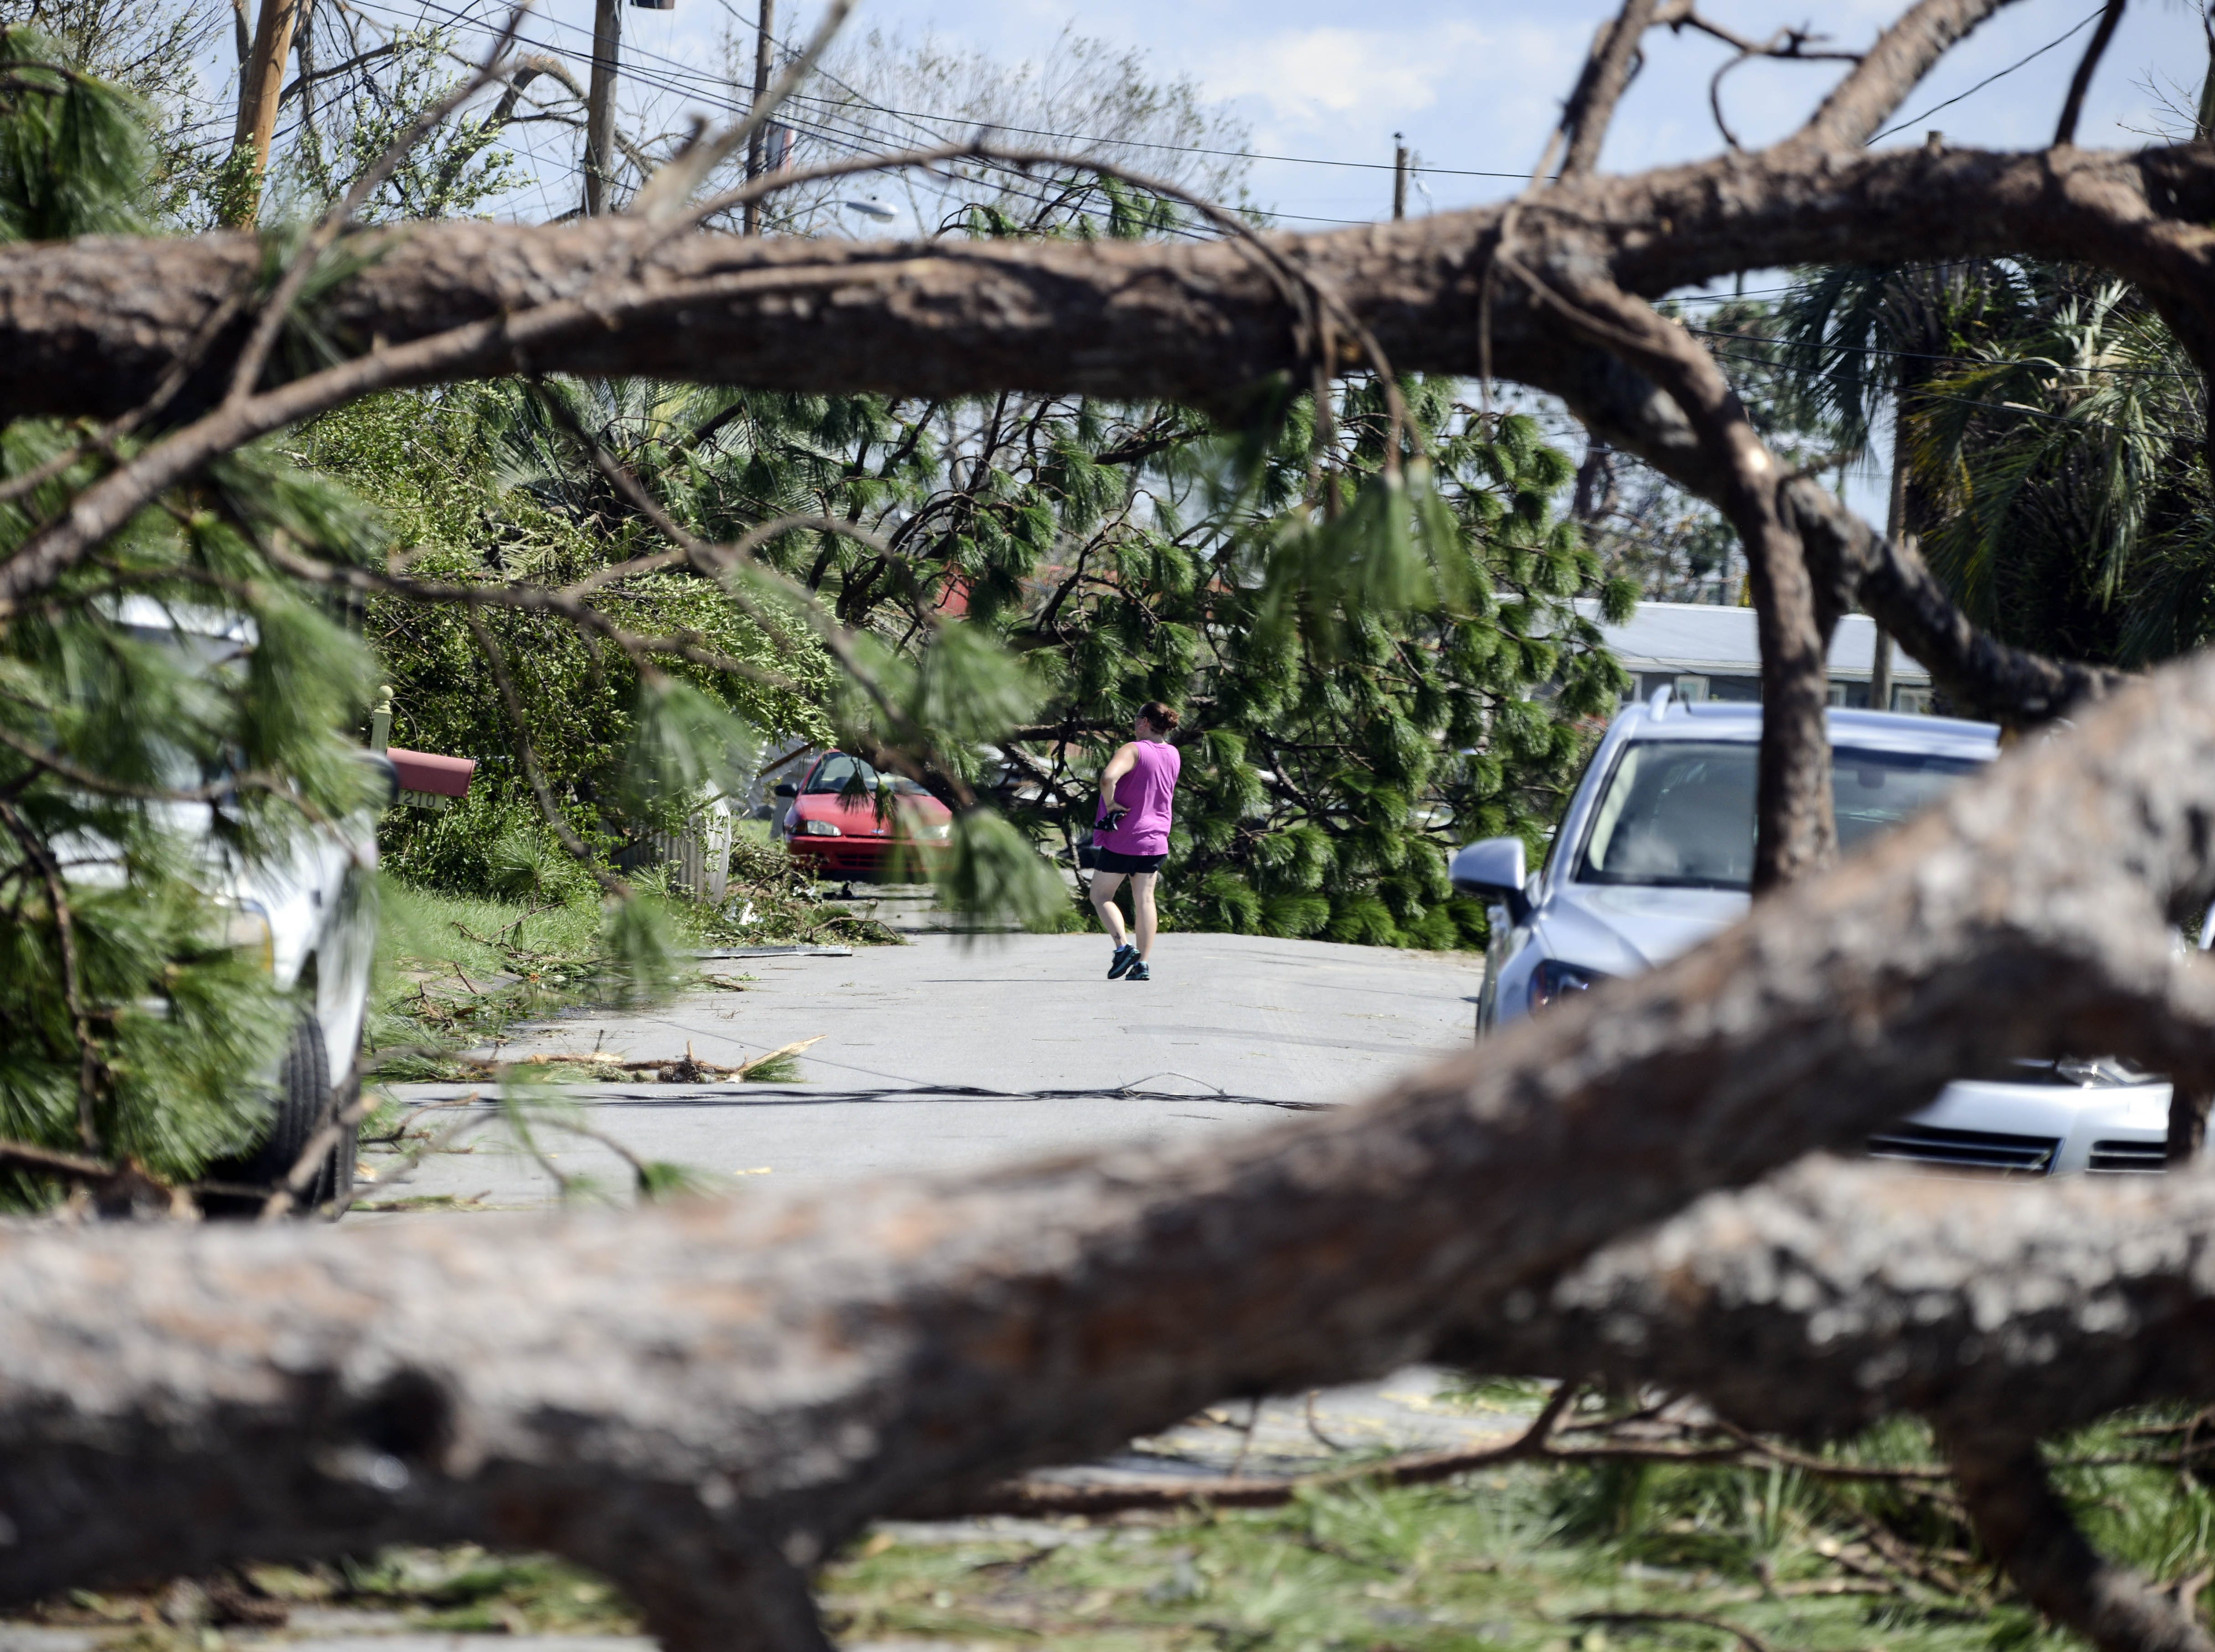 A resident of the Forest Park neighborhood in Panama City walks through her neighborhood Thursday. Many of the streets are blocked by trees blown down by Hurricane Michael.